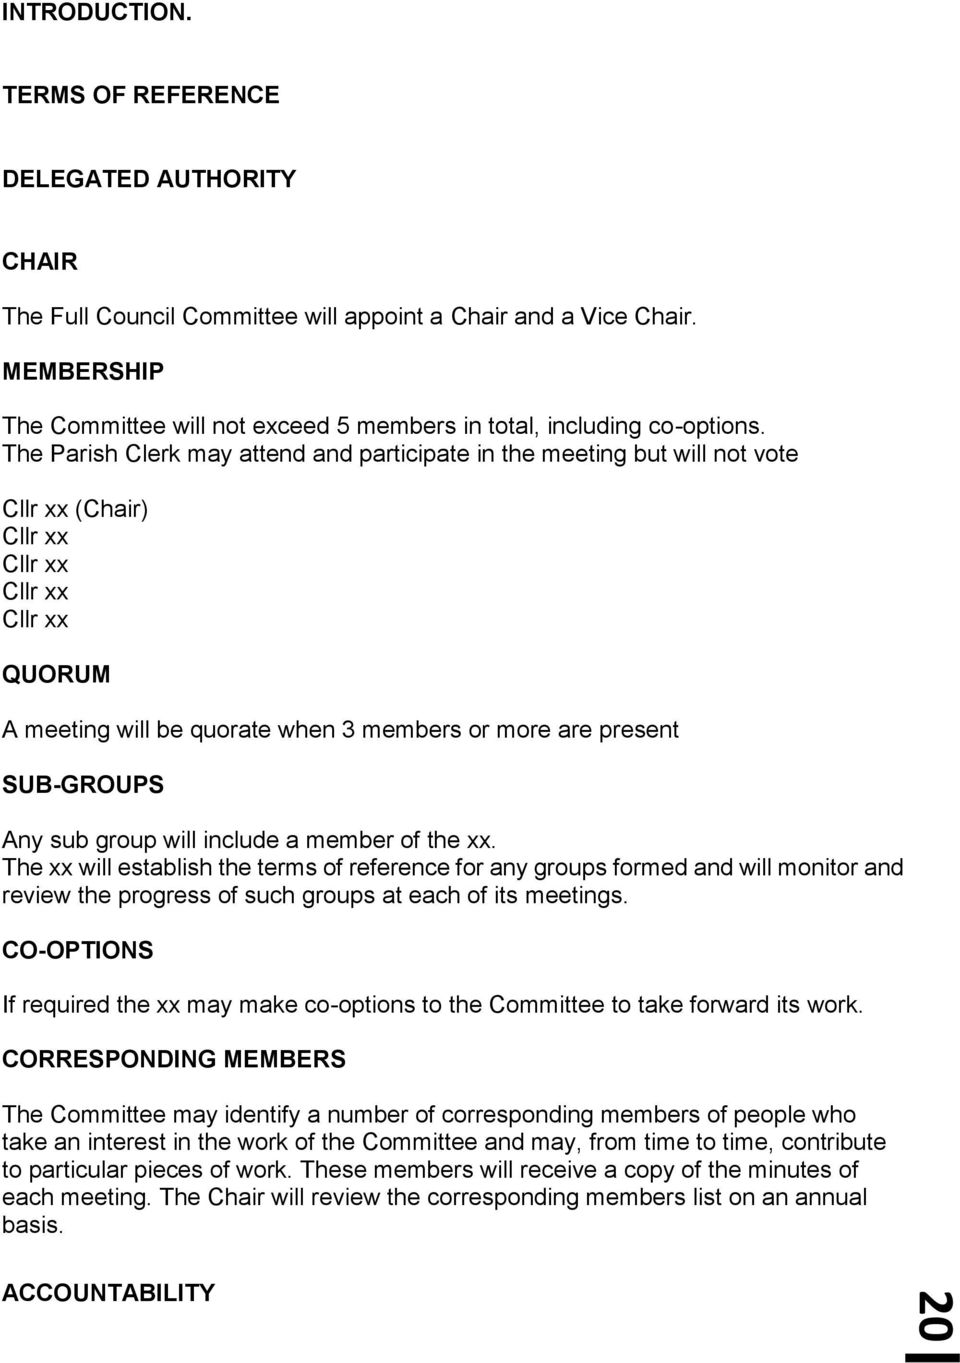 The Parish Clerk may attend and participate in the meeting but will not vote Cllr xx (Chair) Cllr xx Cllr xx Cllr xx Cllr xx QUORUM A meeting will be quorate when 3 members or more are present